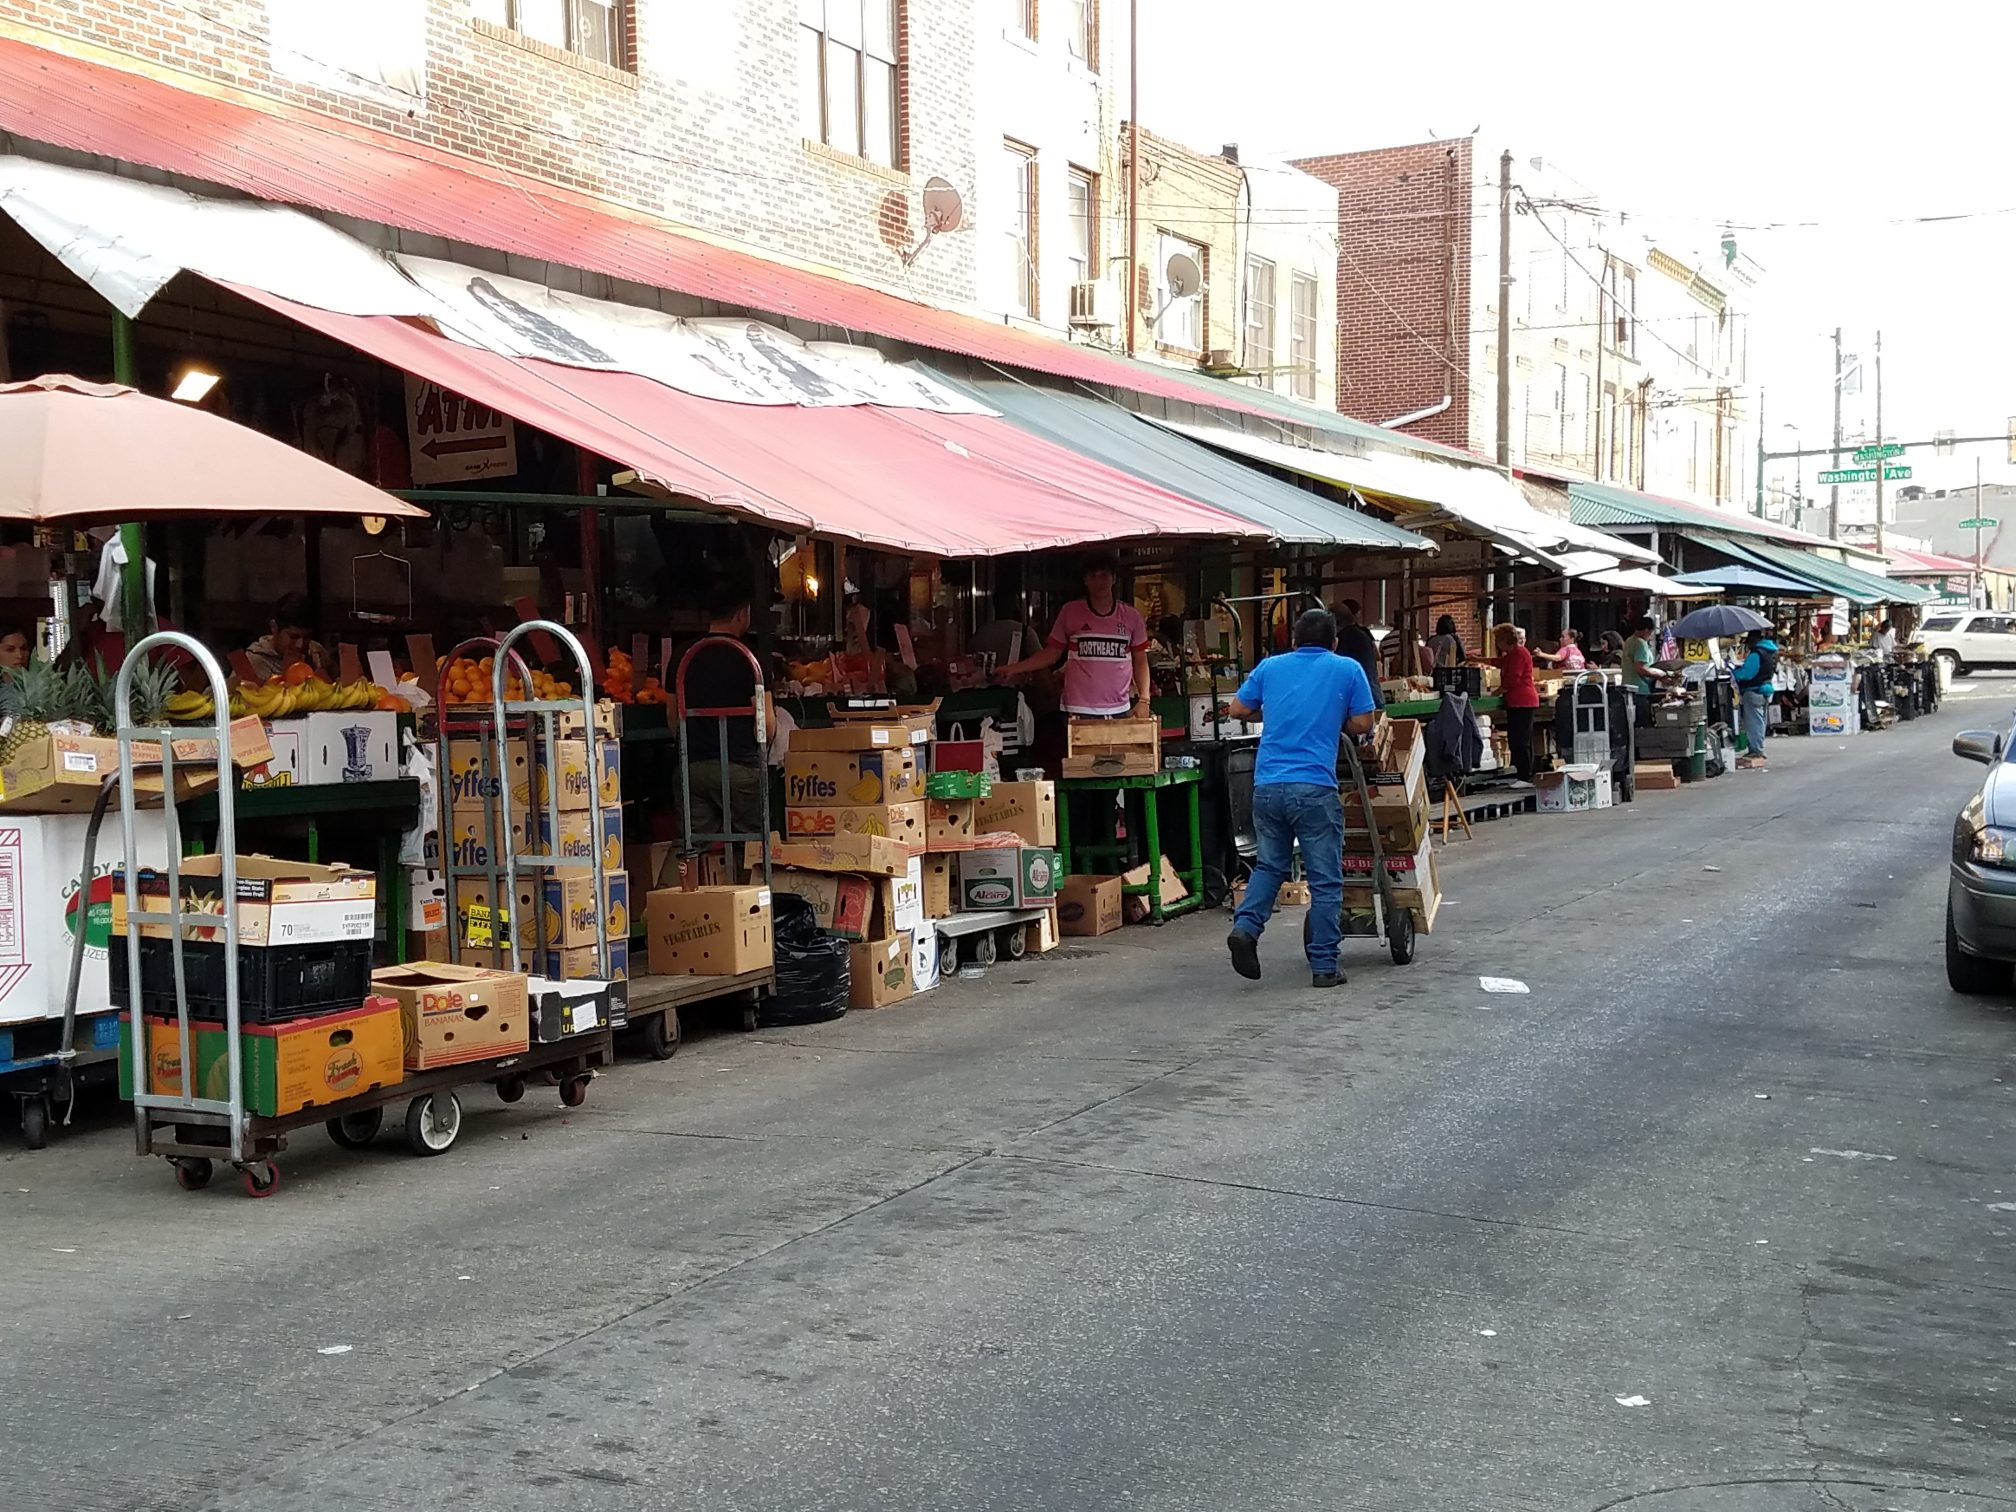 Philadelphia secrets include a variety of Rocky sites, like the Italian Market.